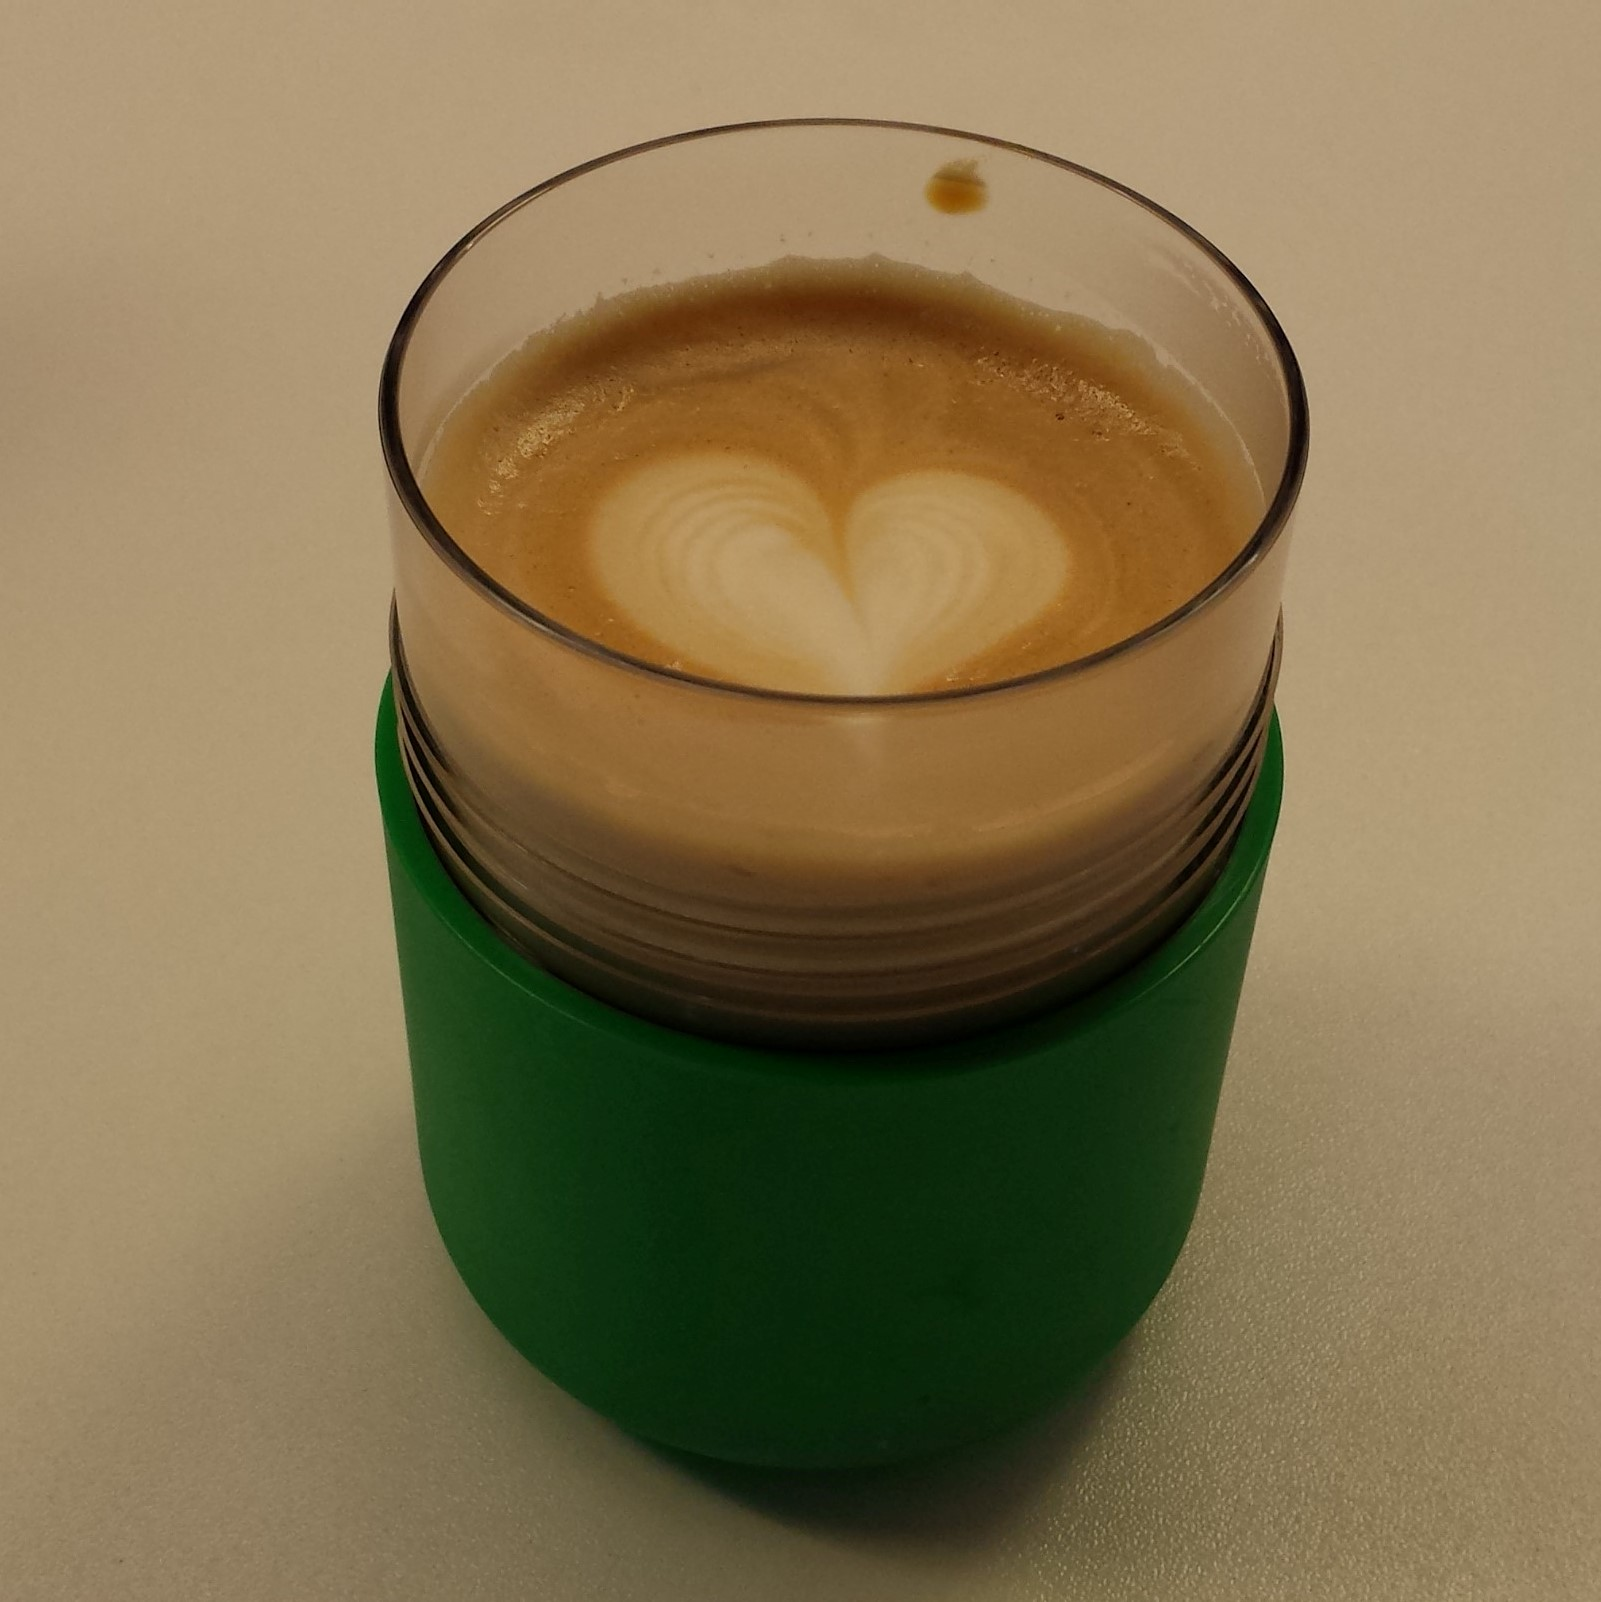 Latte Art in my 8 oz Smart Cup from Frank Green at 6/8 Kafe in Birmingham